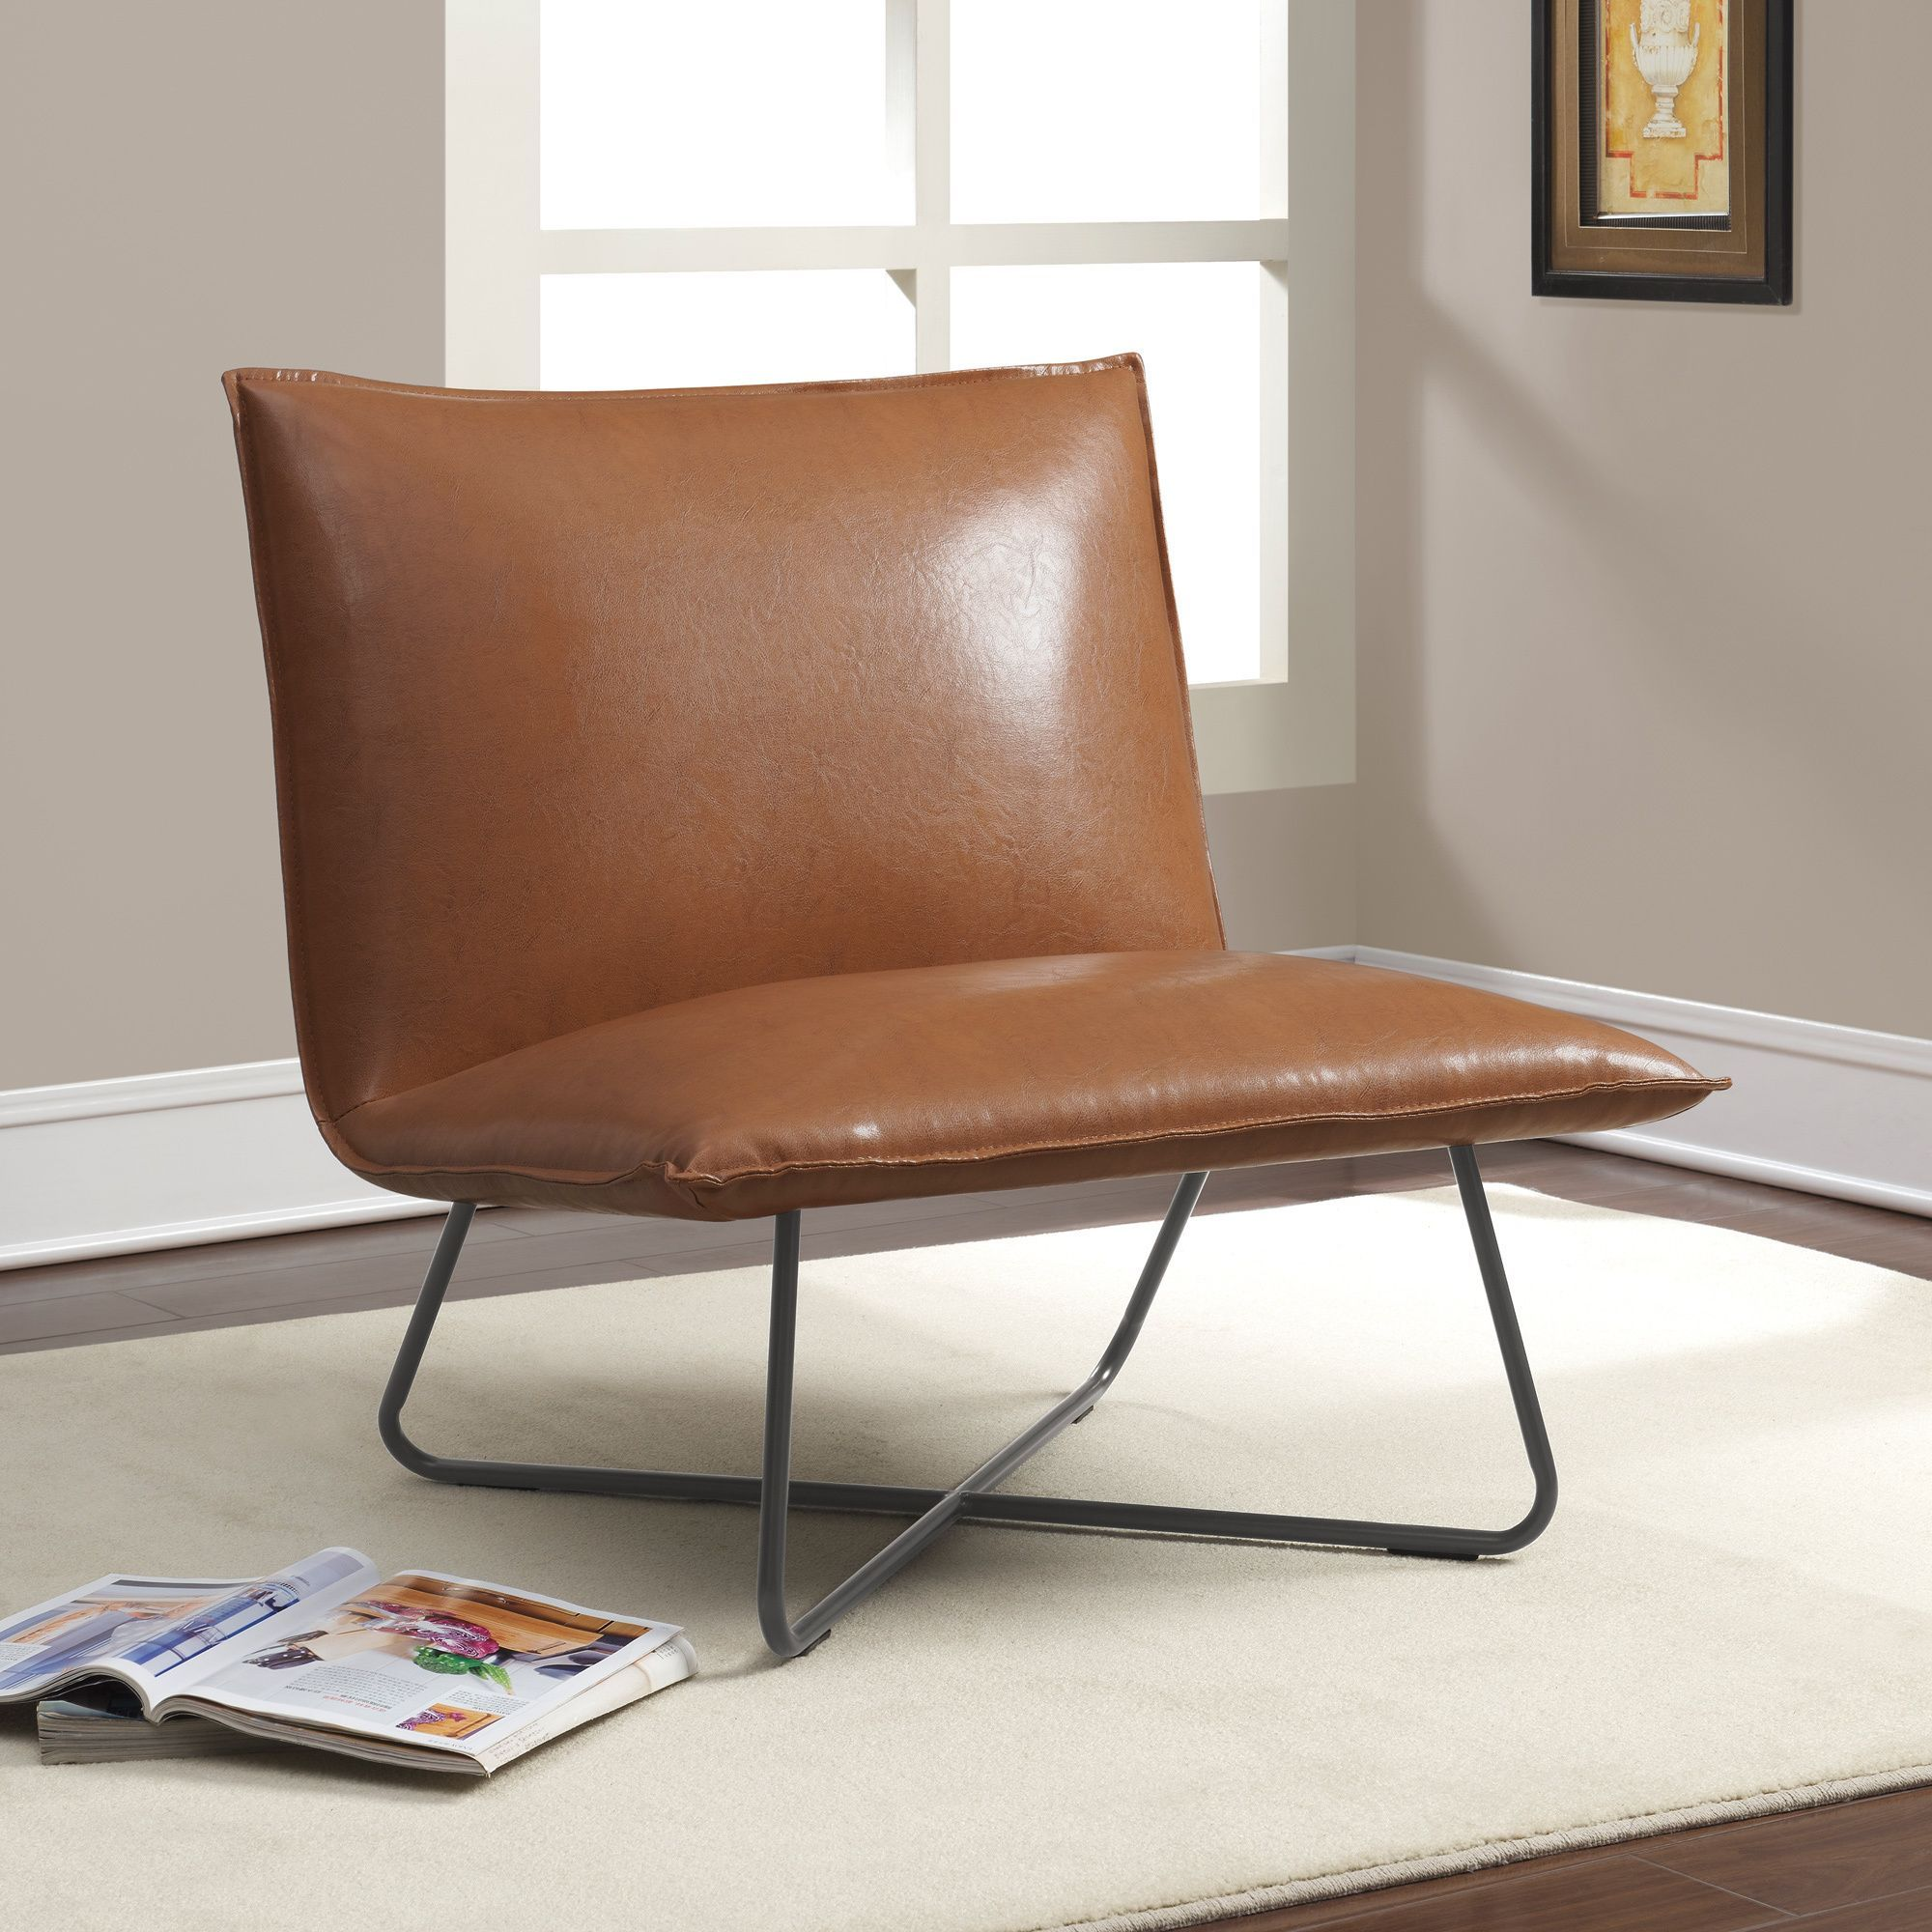 Pillow Chairs Saddle Brown Pillow Lounge Chair By I Love Living Powder